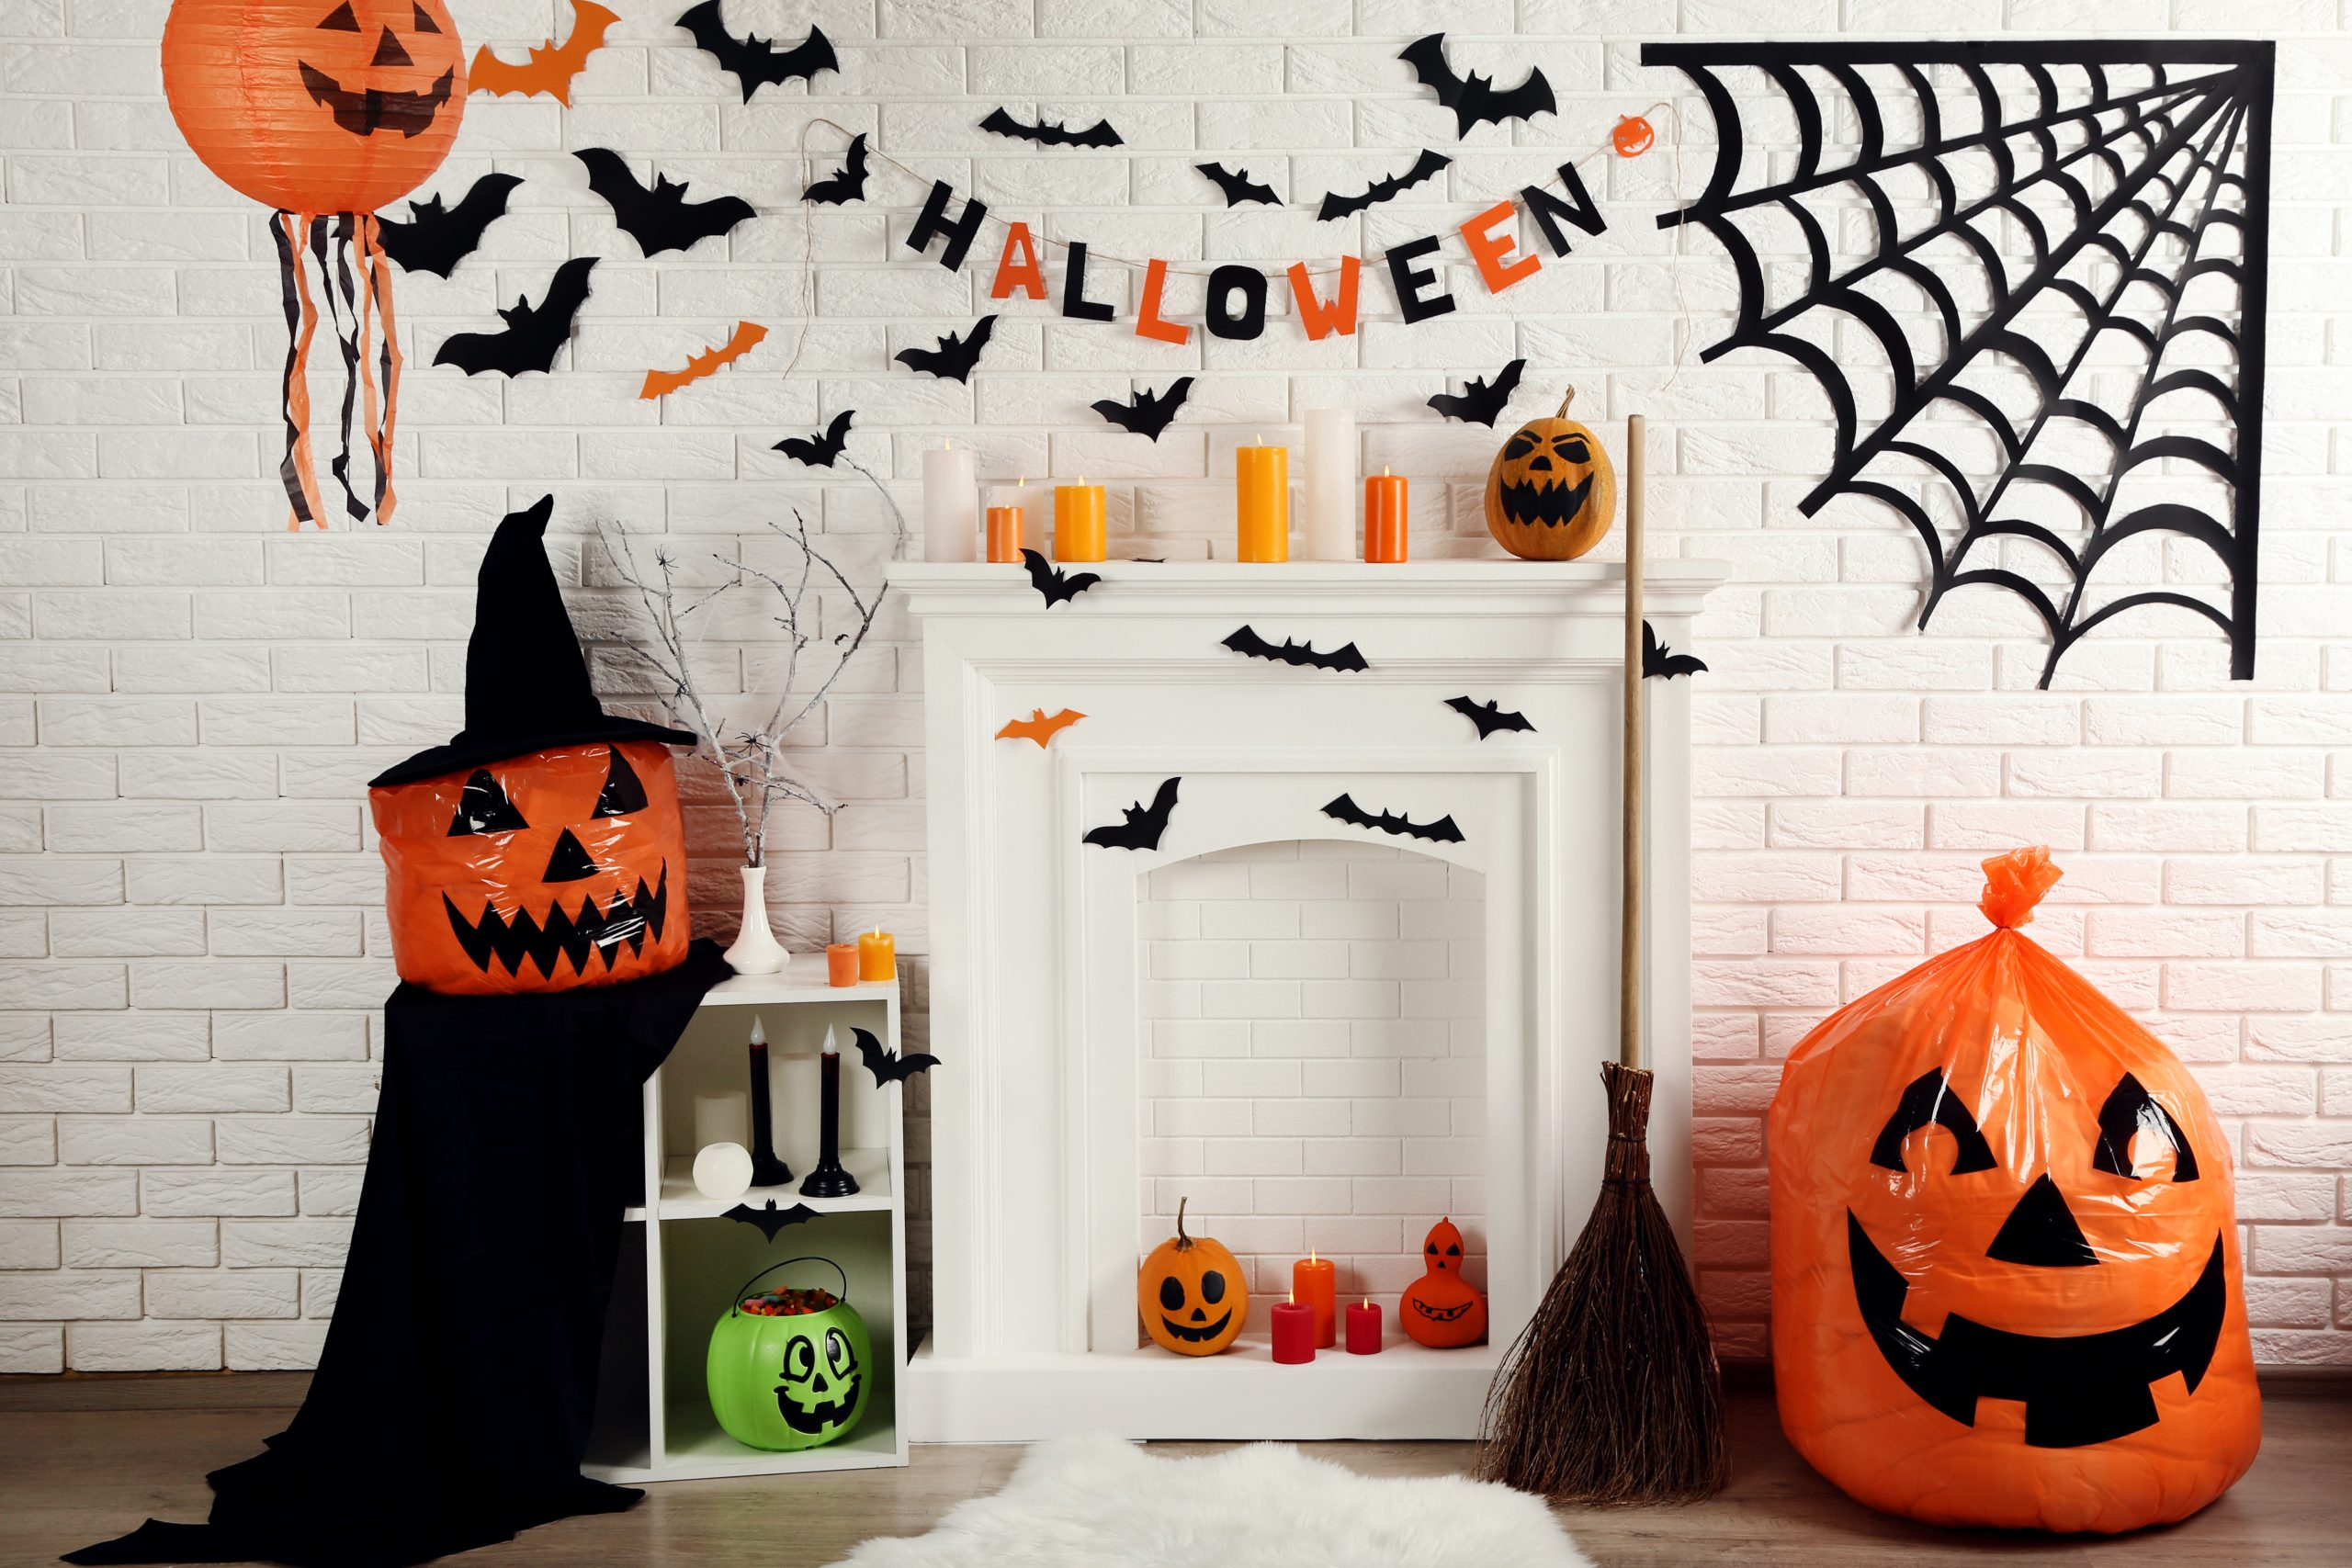 Halloween decorations on white fireplace with orange pumpkins